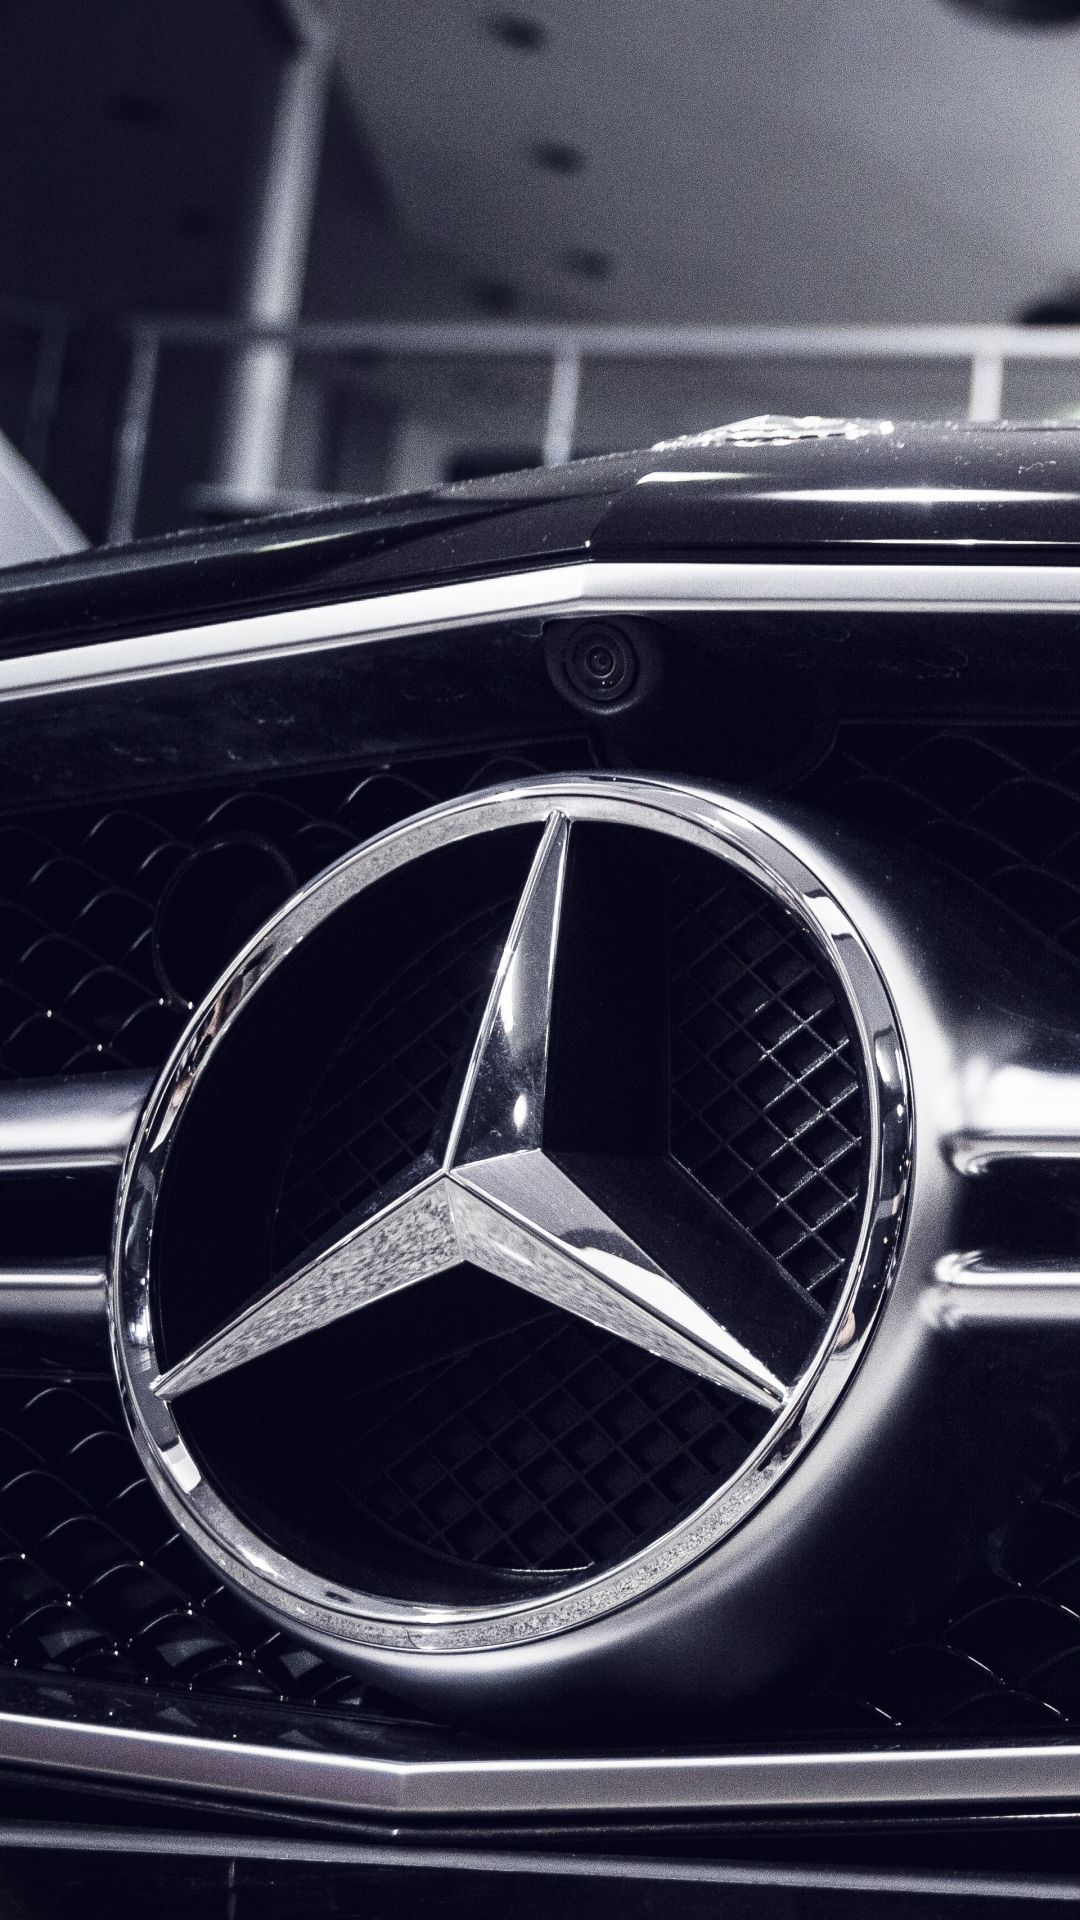 Mercedes Benz Iphone 7 Wallpapers Top Free Mercedes Benz